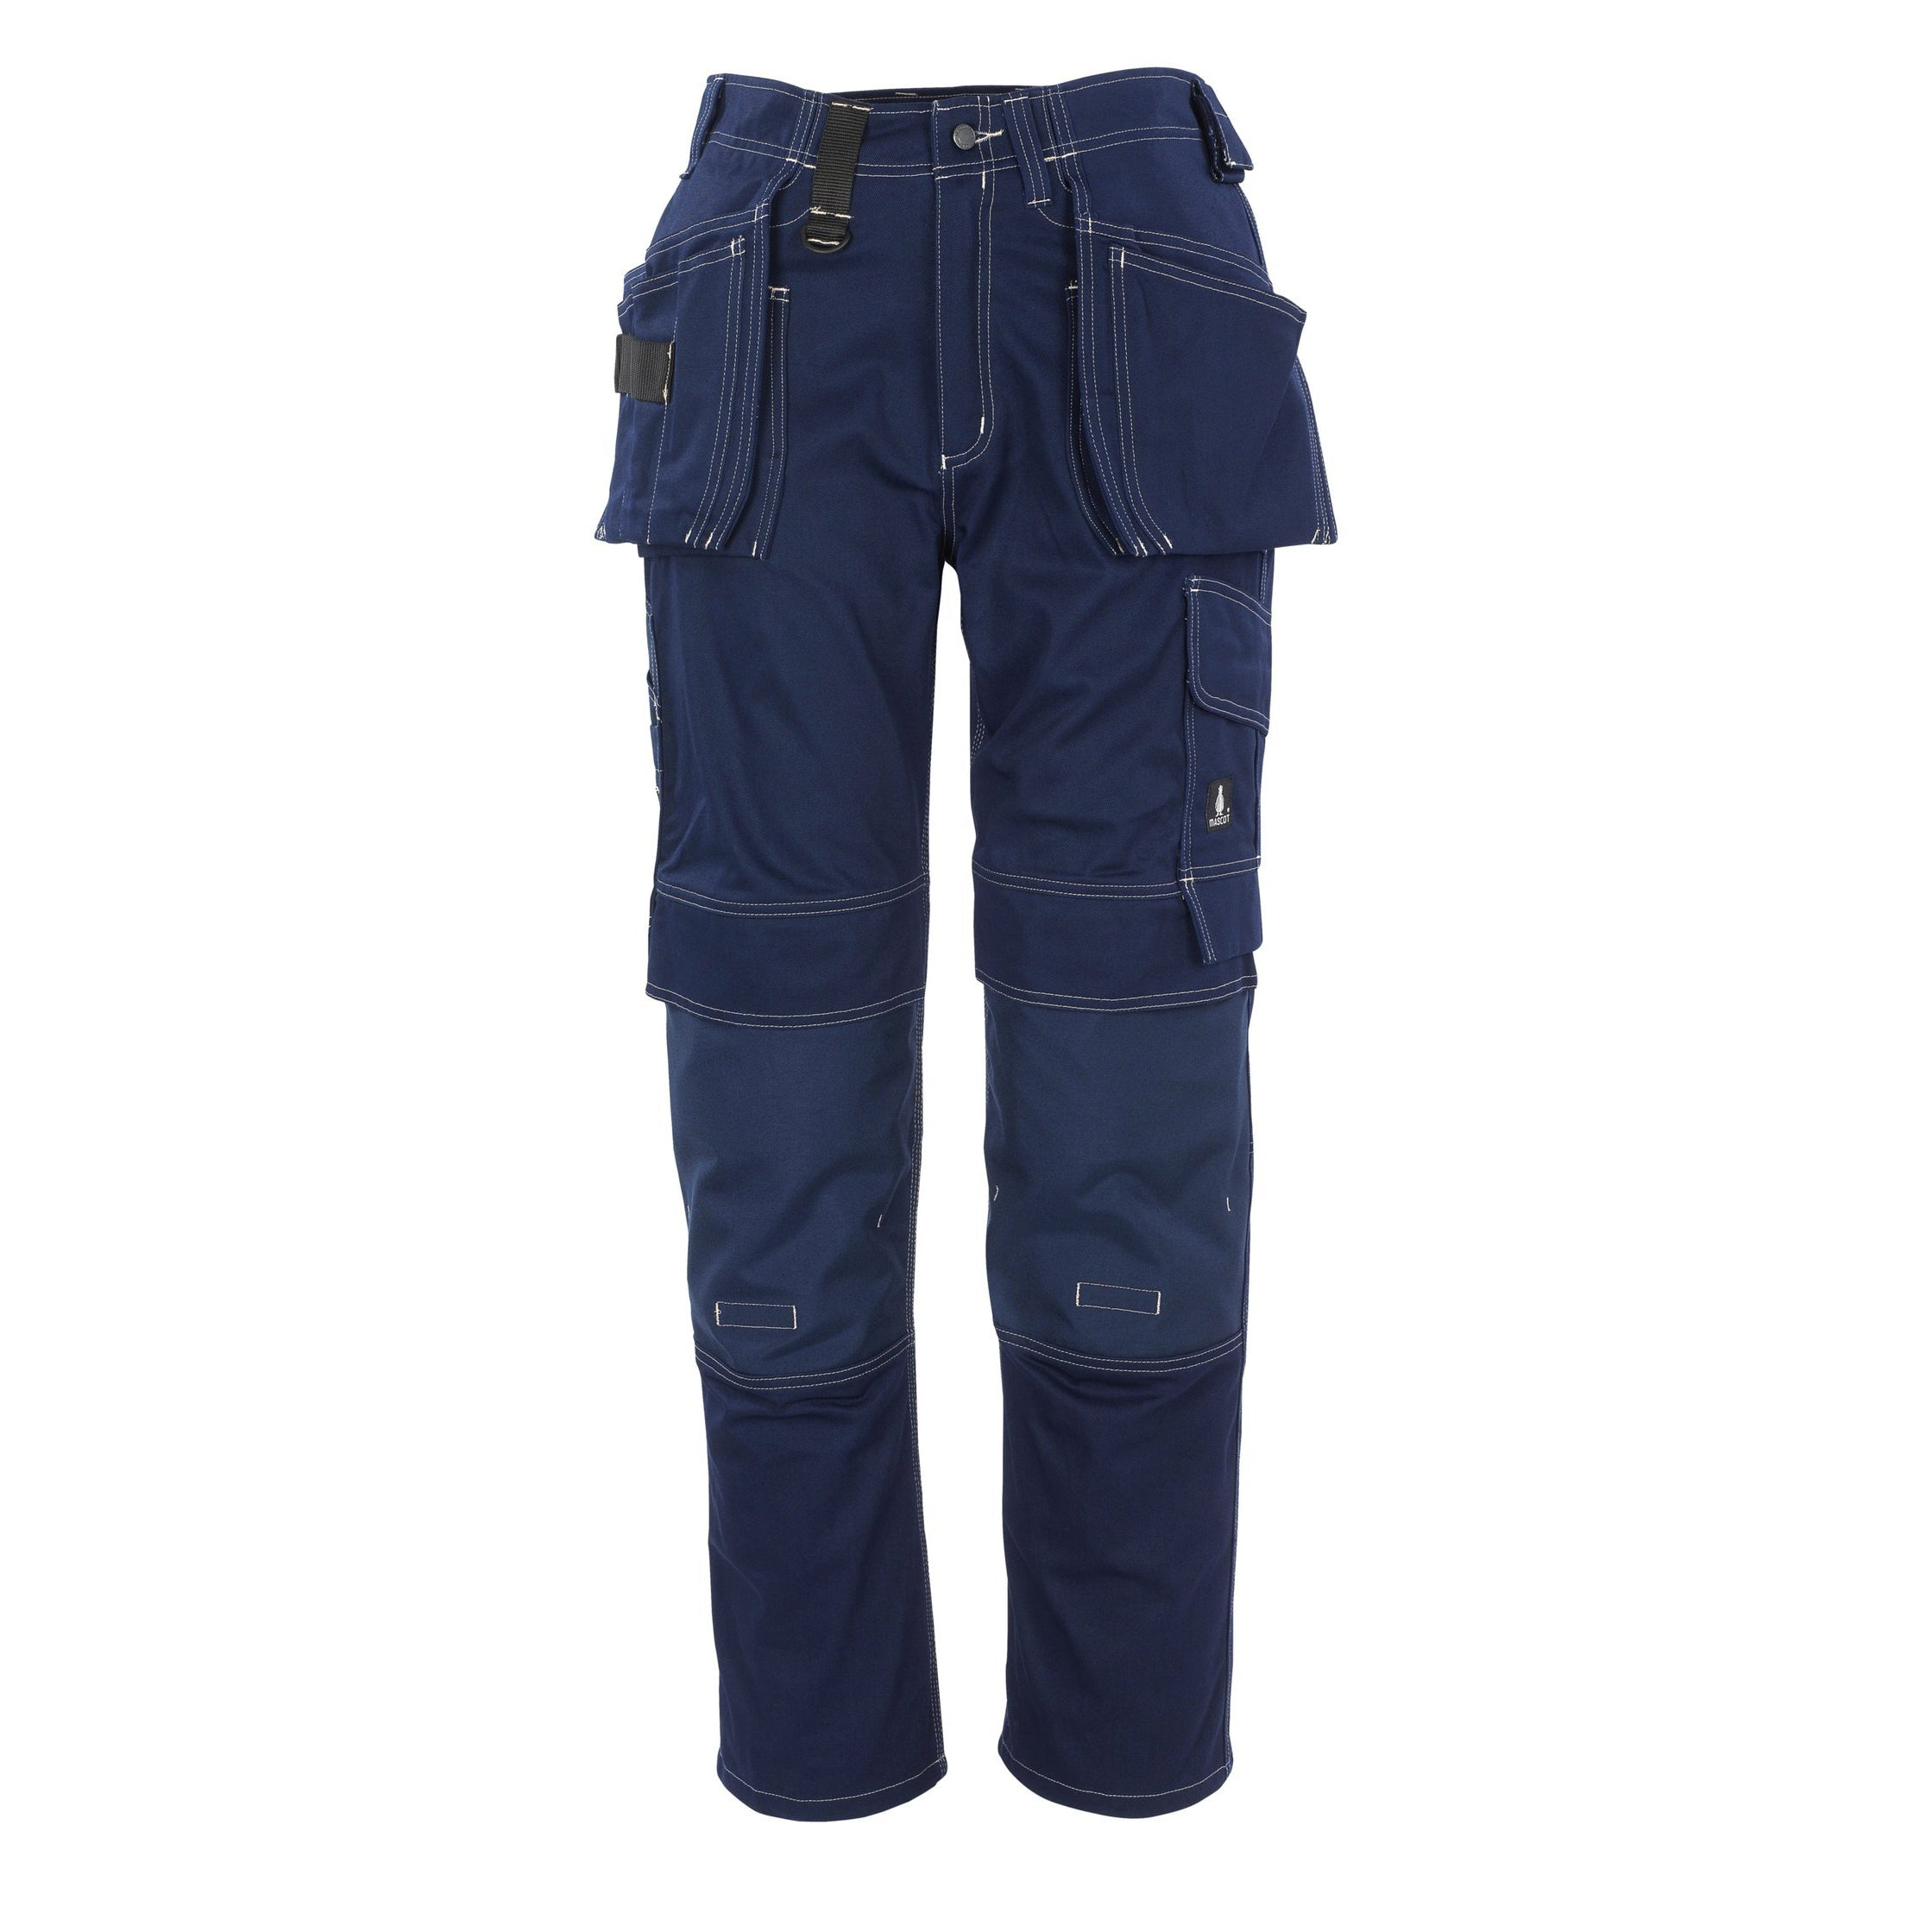 Mascot Atlanta Hardwear Trousers With Kneepad Pockets And Holster Pockets